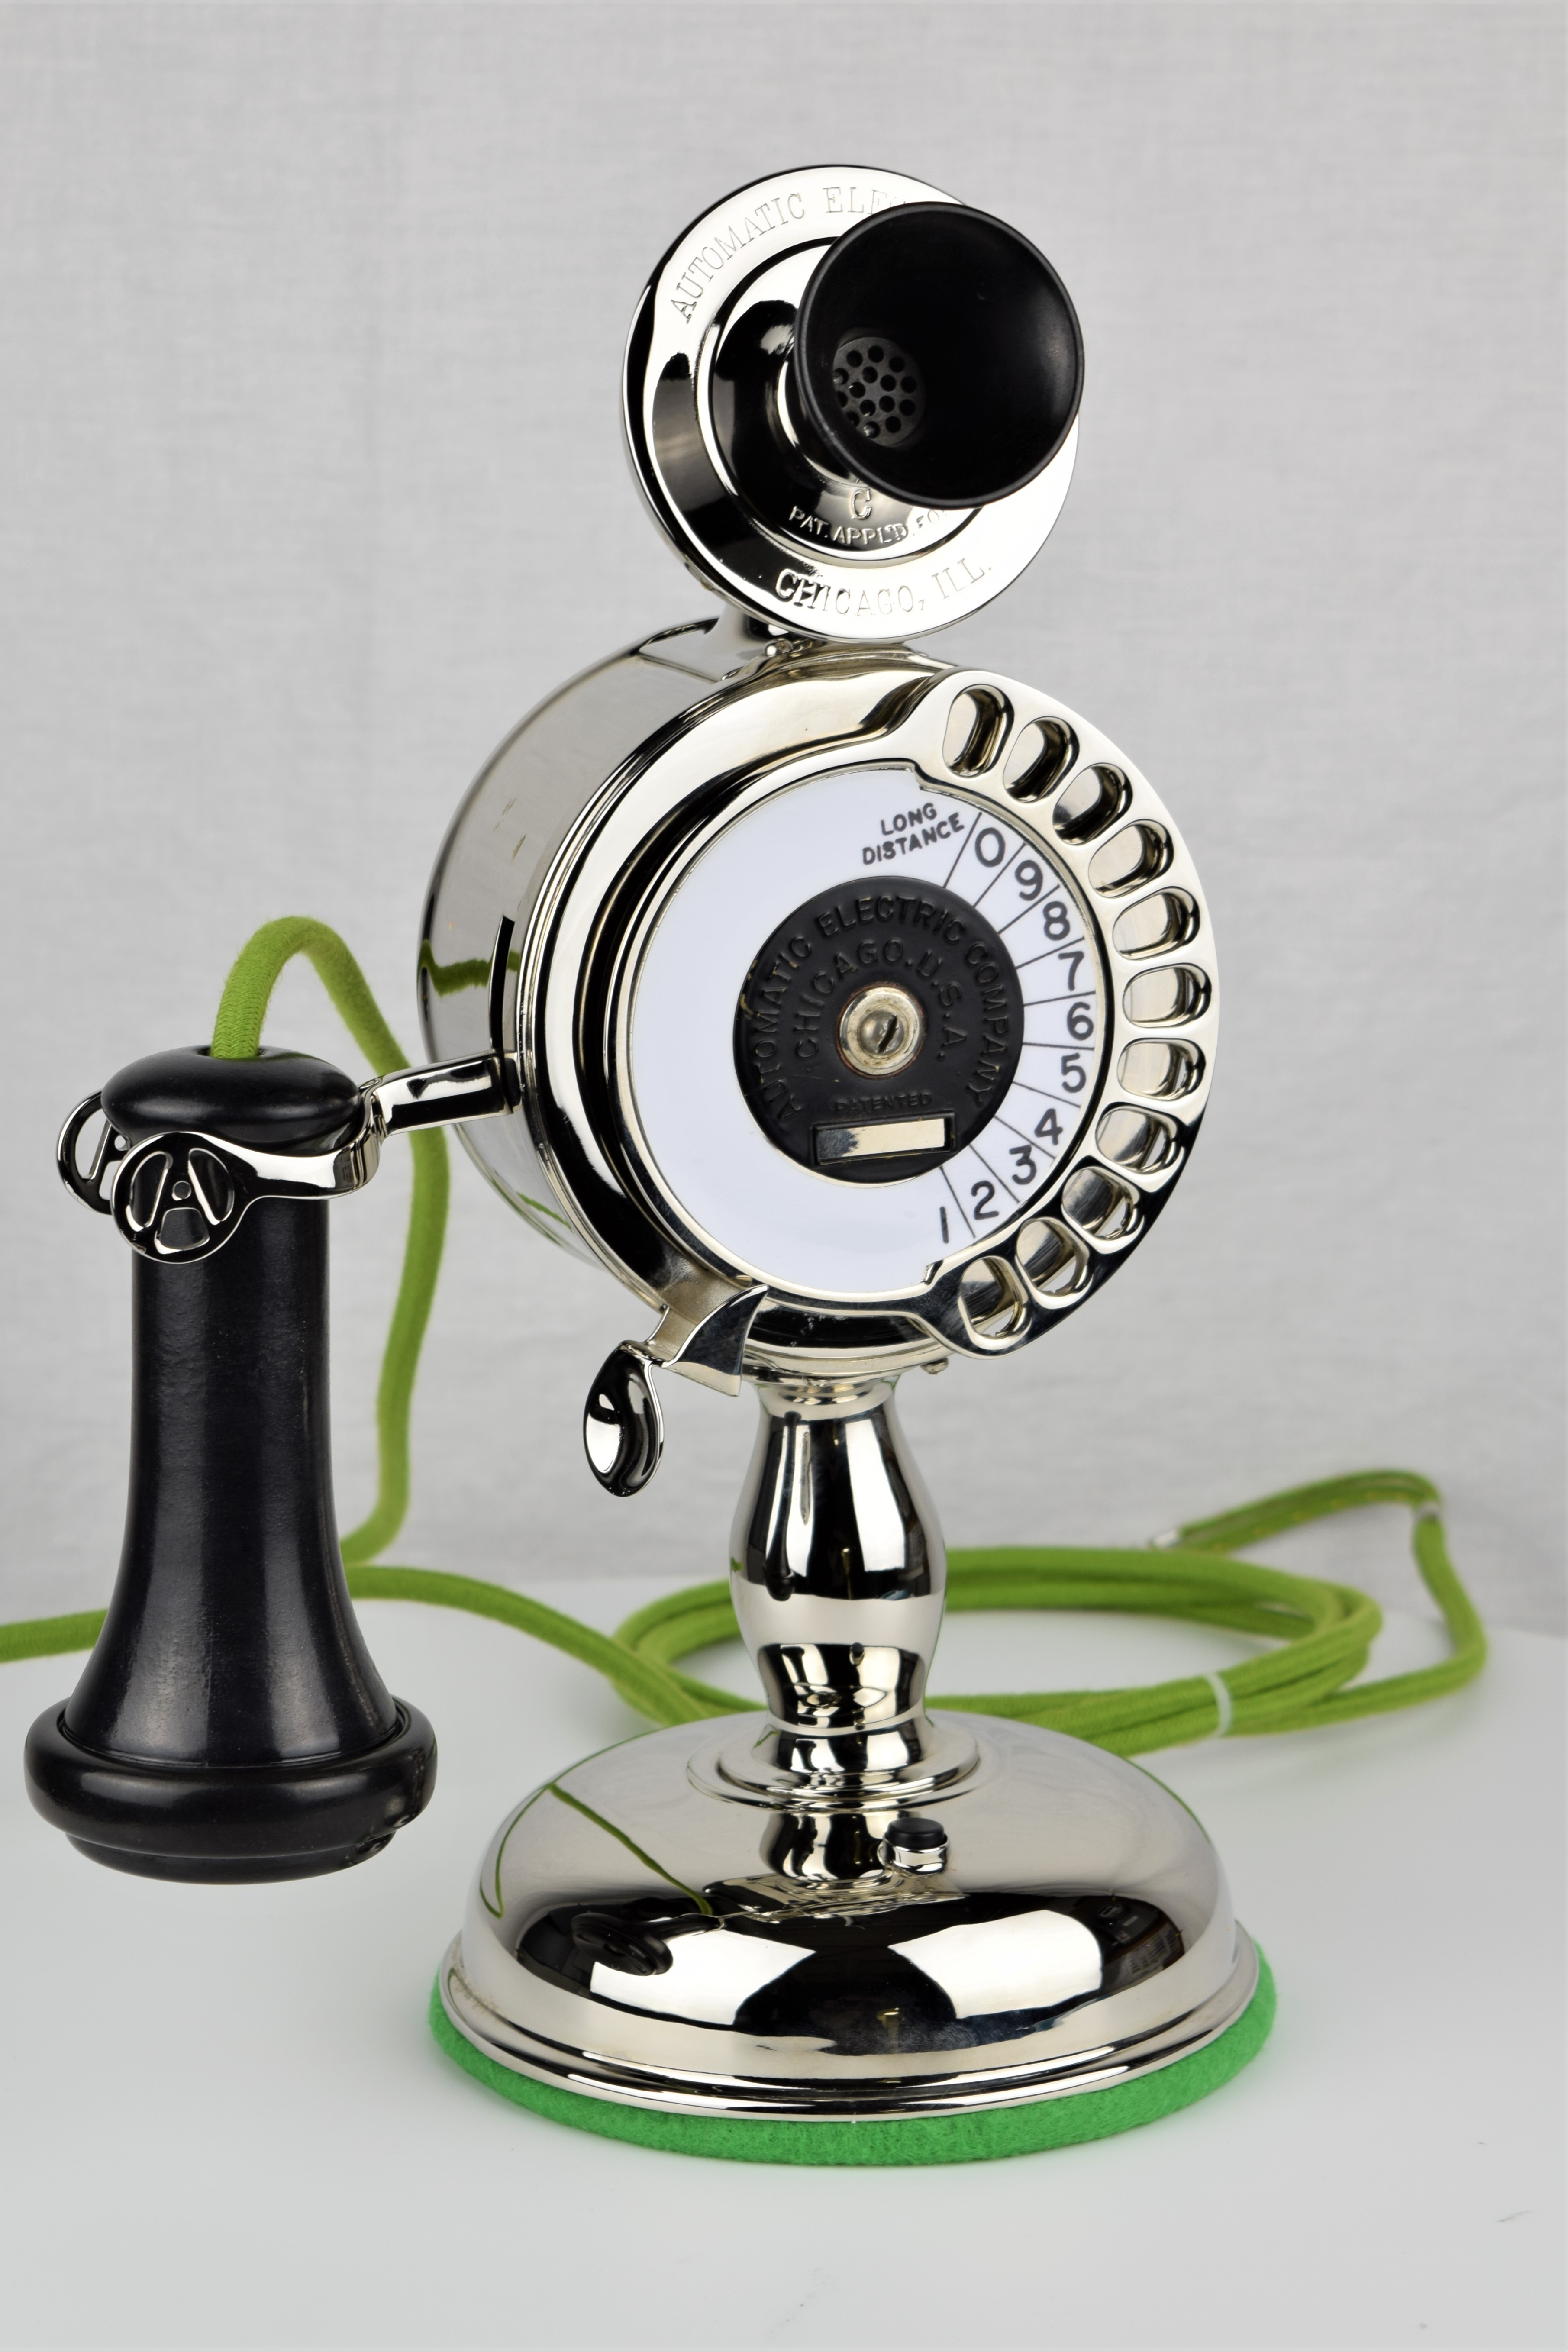 Strowger Dial Candlestick